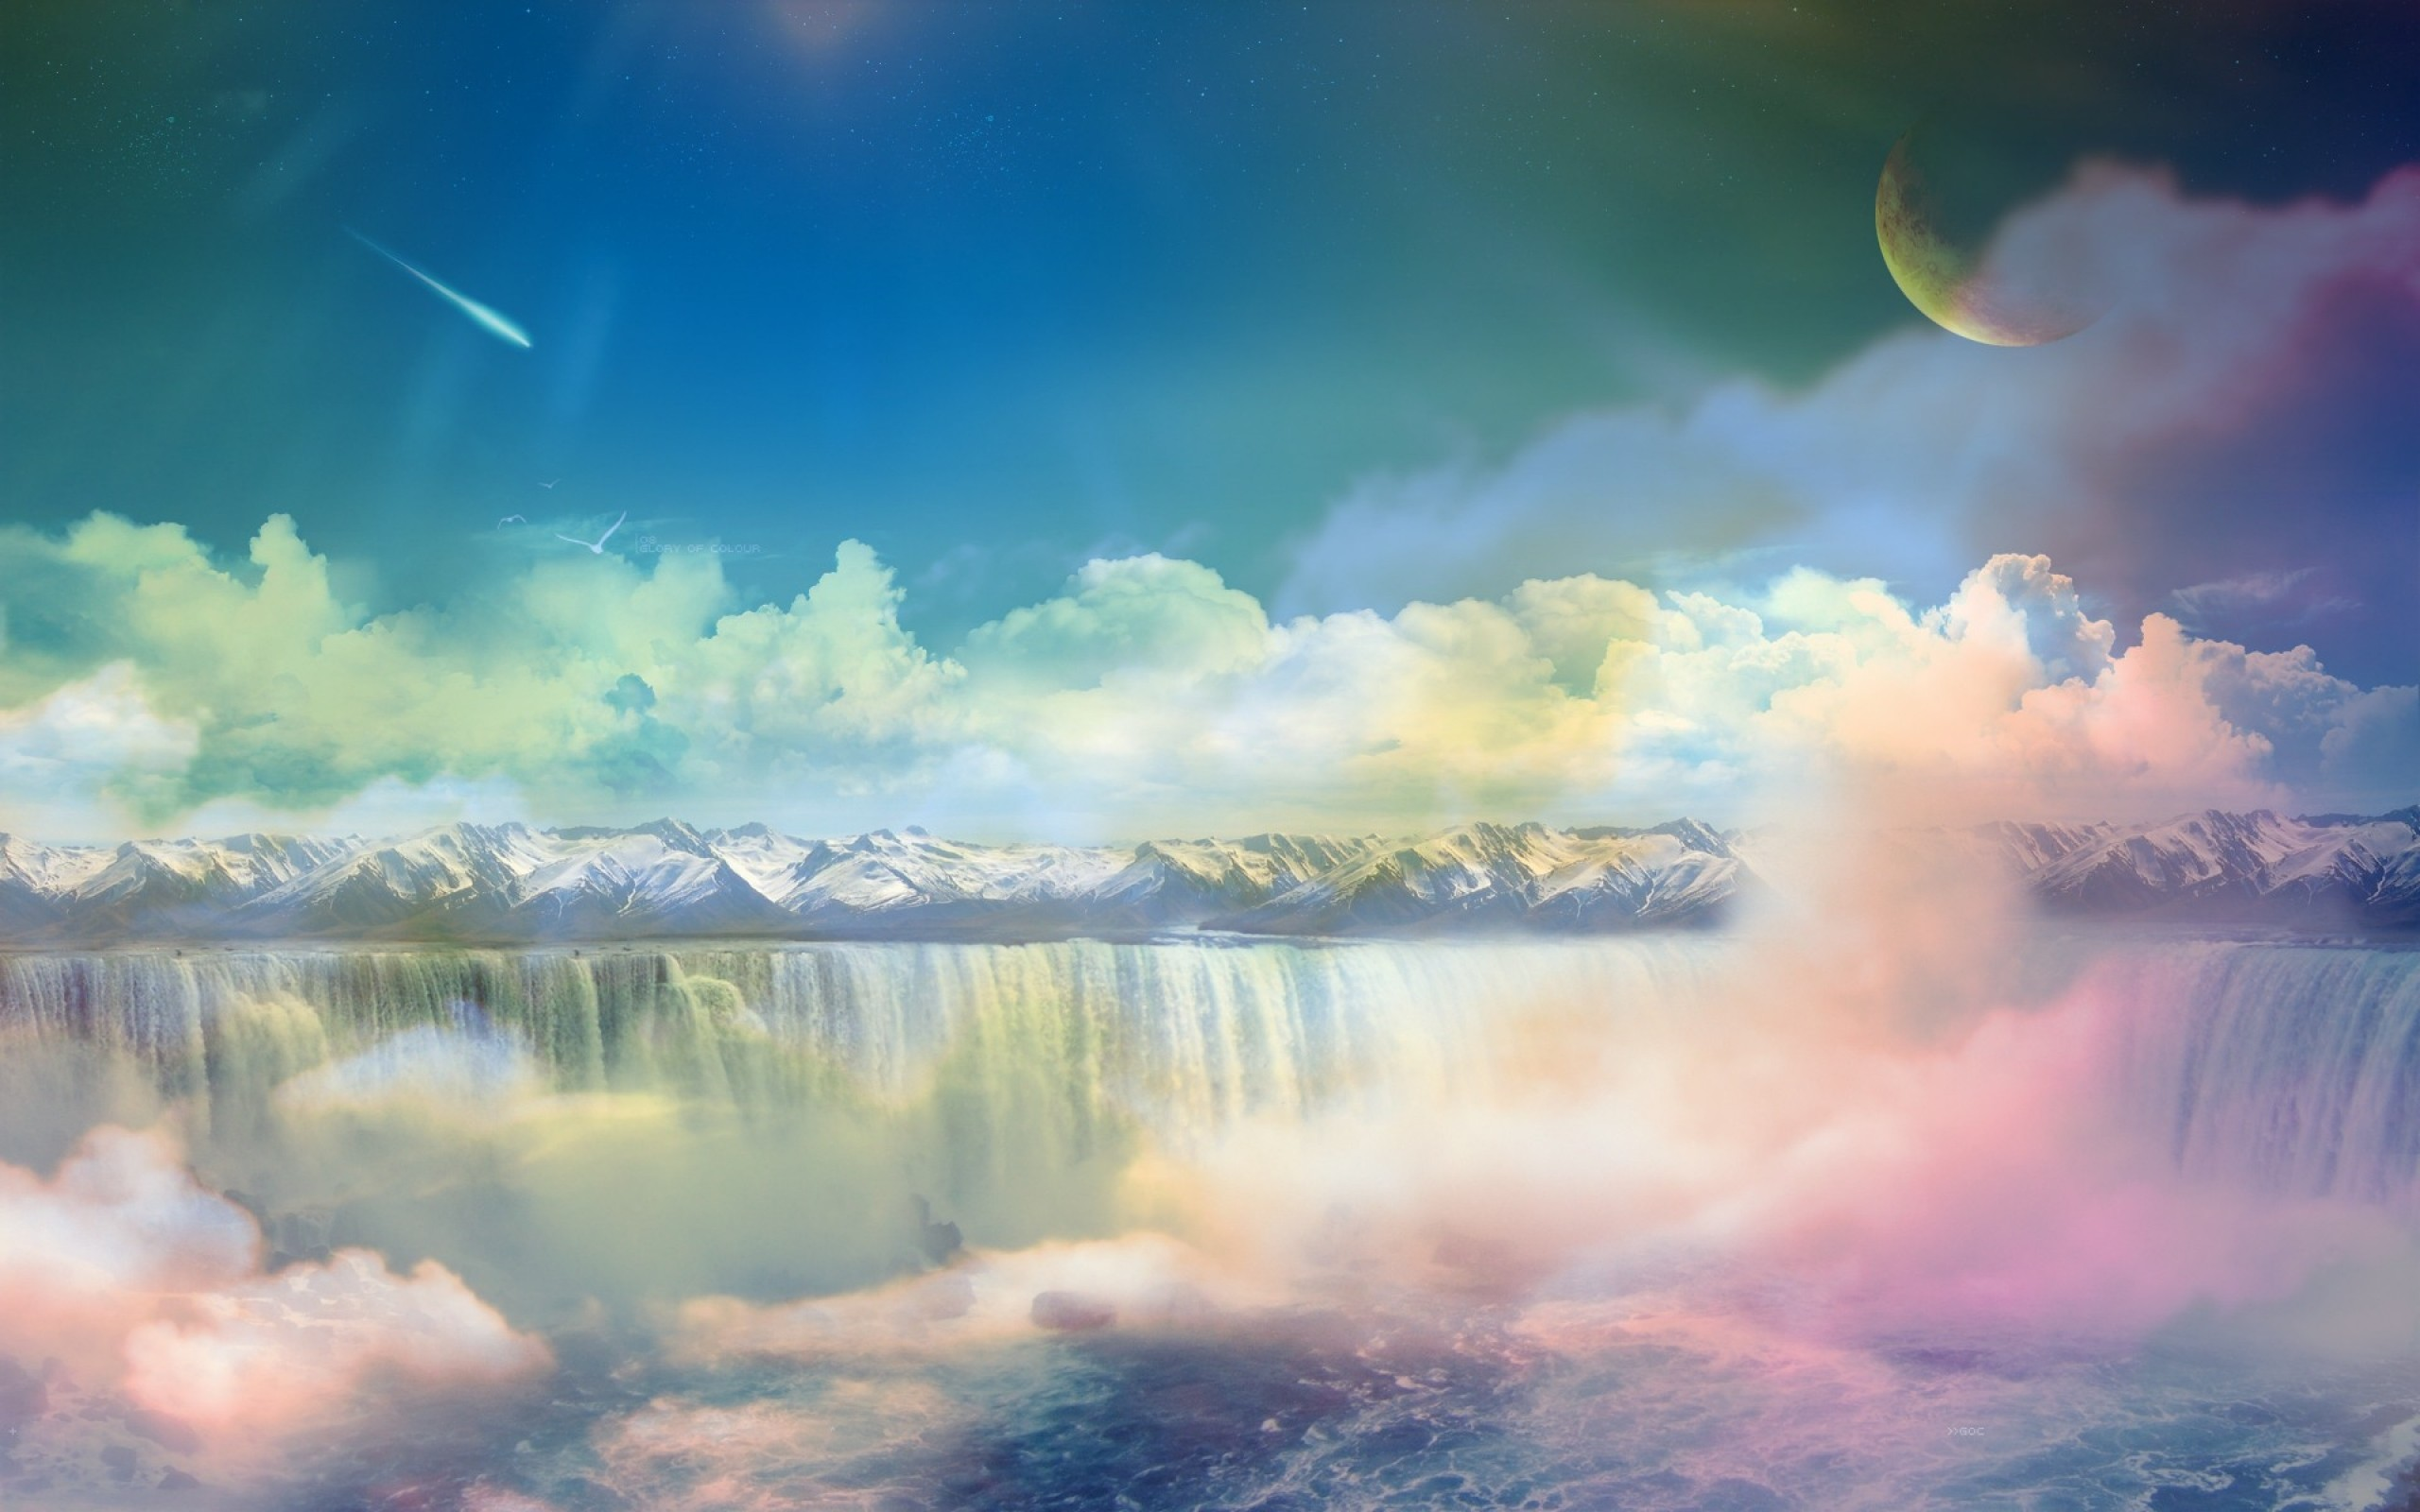 Res: 2560x1600, 152 A Dreamy World HD Wallpapers | Backgrounds - Wallpaper Abyss